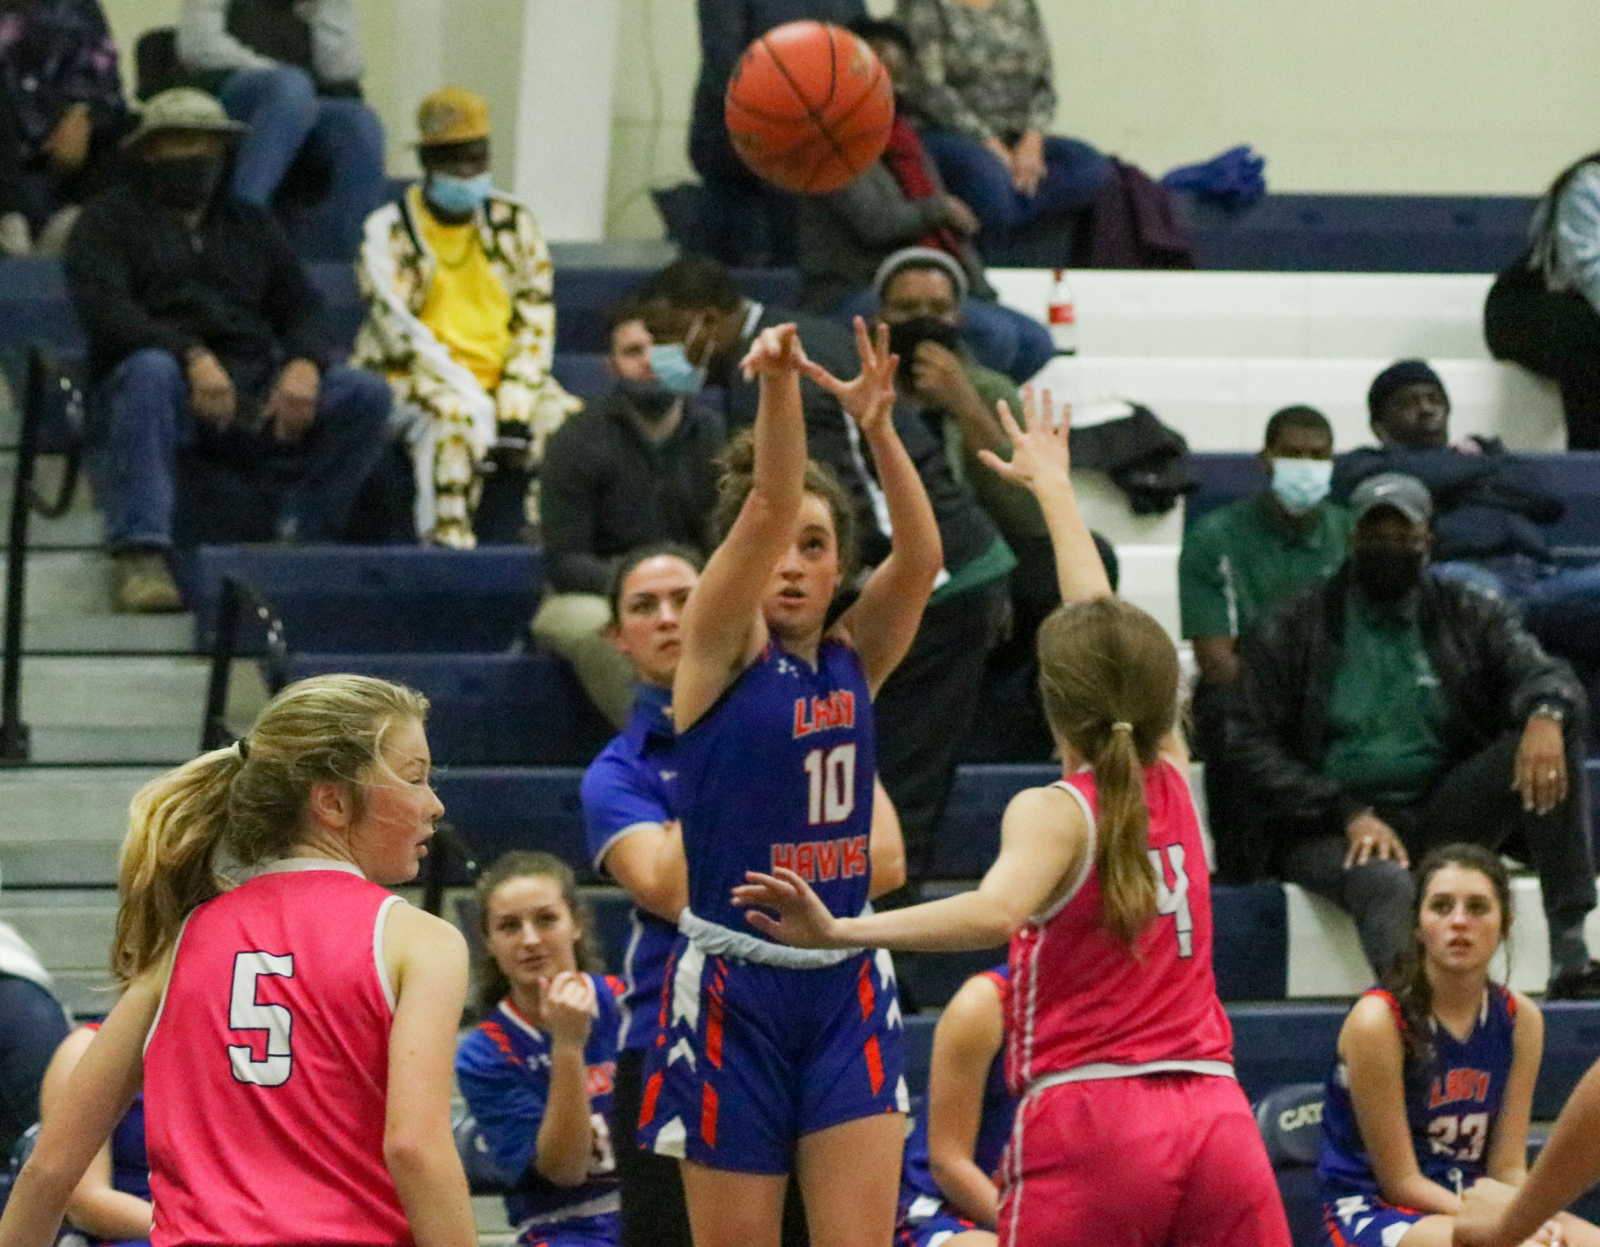 1.15.2021 (PHOTO GALLERY):  Hanahan Varsity Girls BKB @ Cathedral Academy – Photos by Cyril Samonte